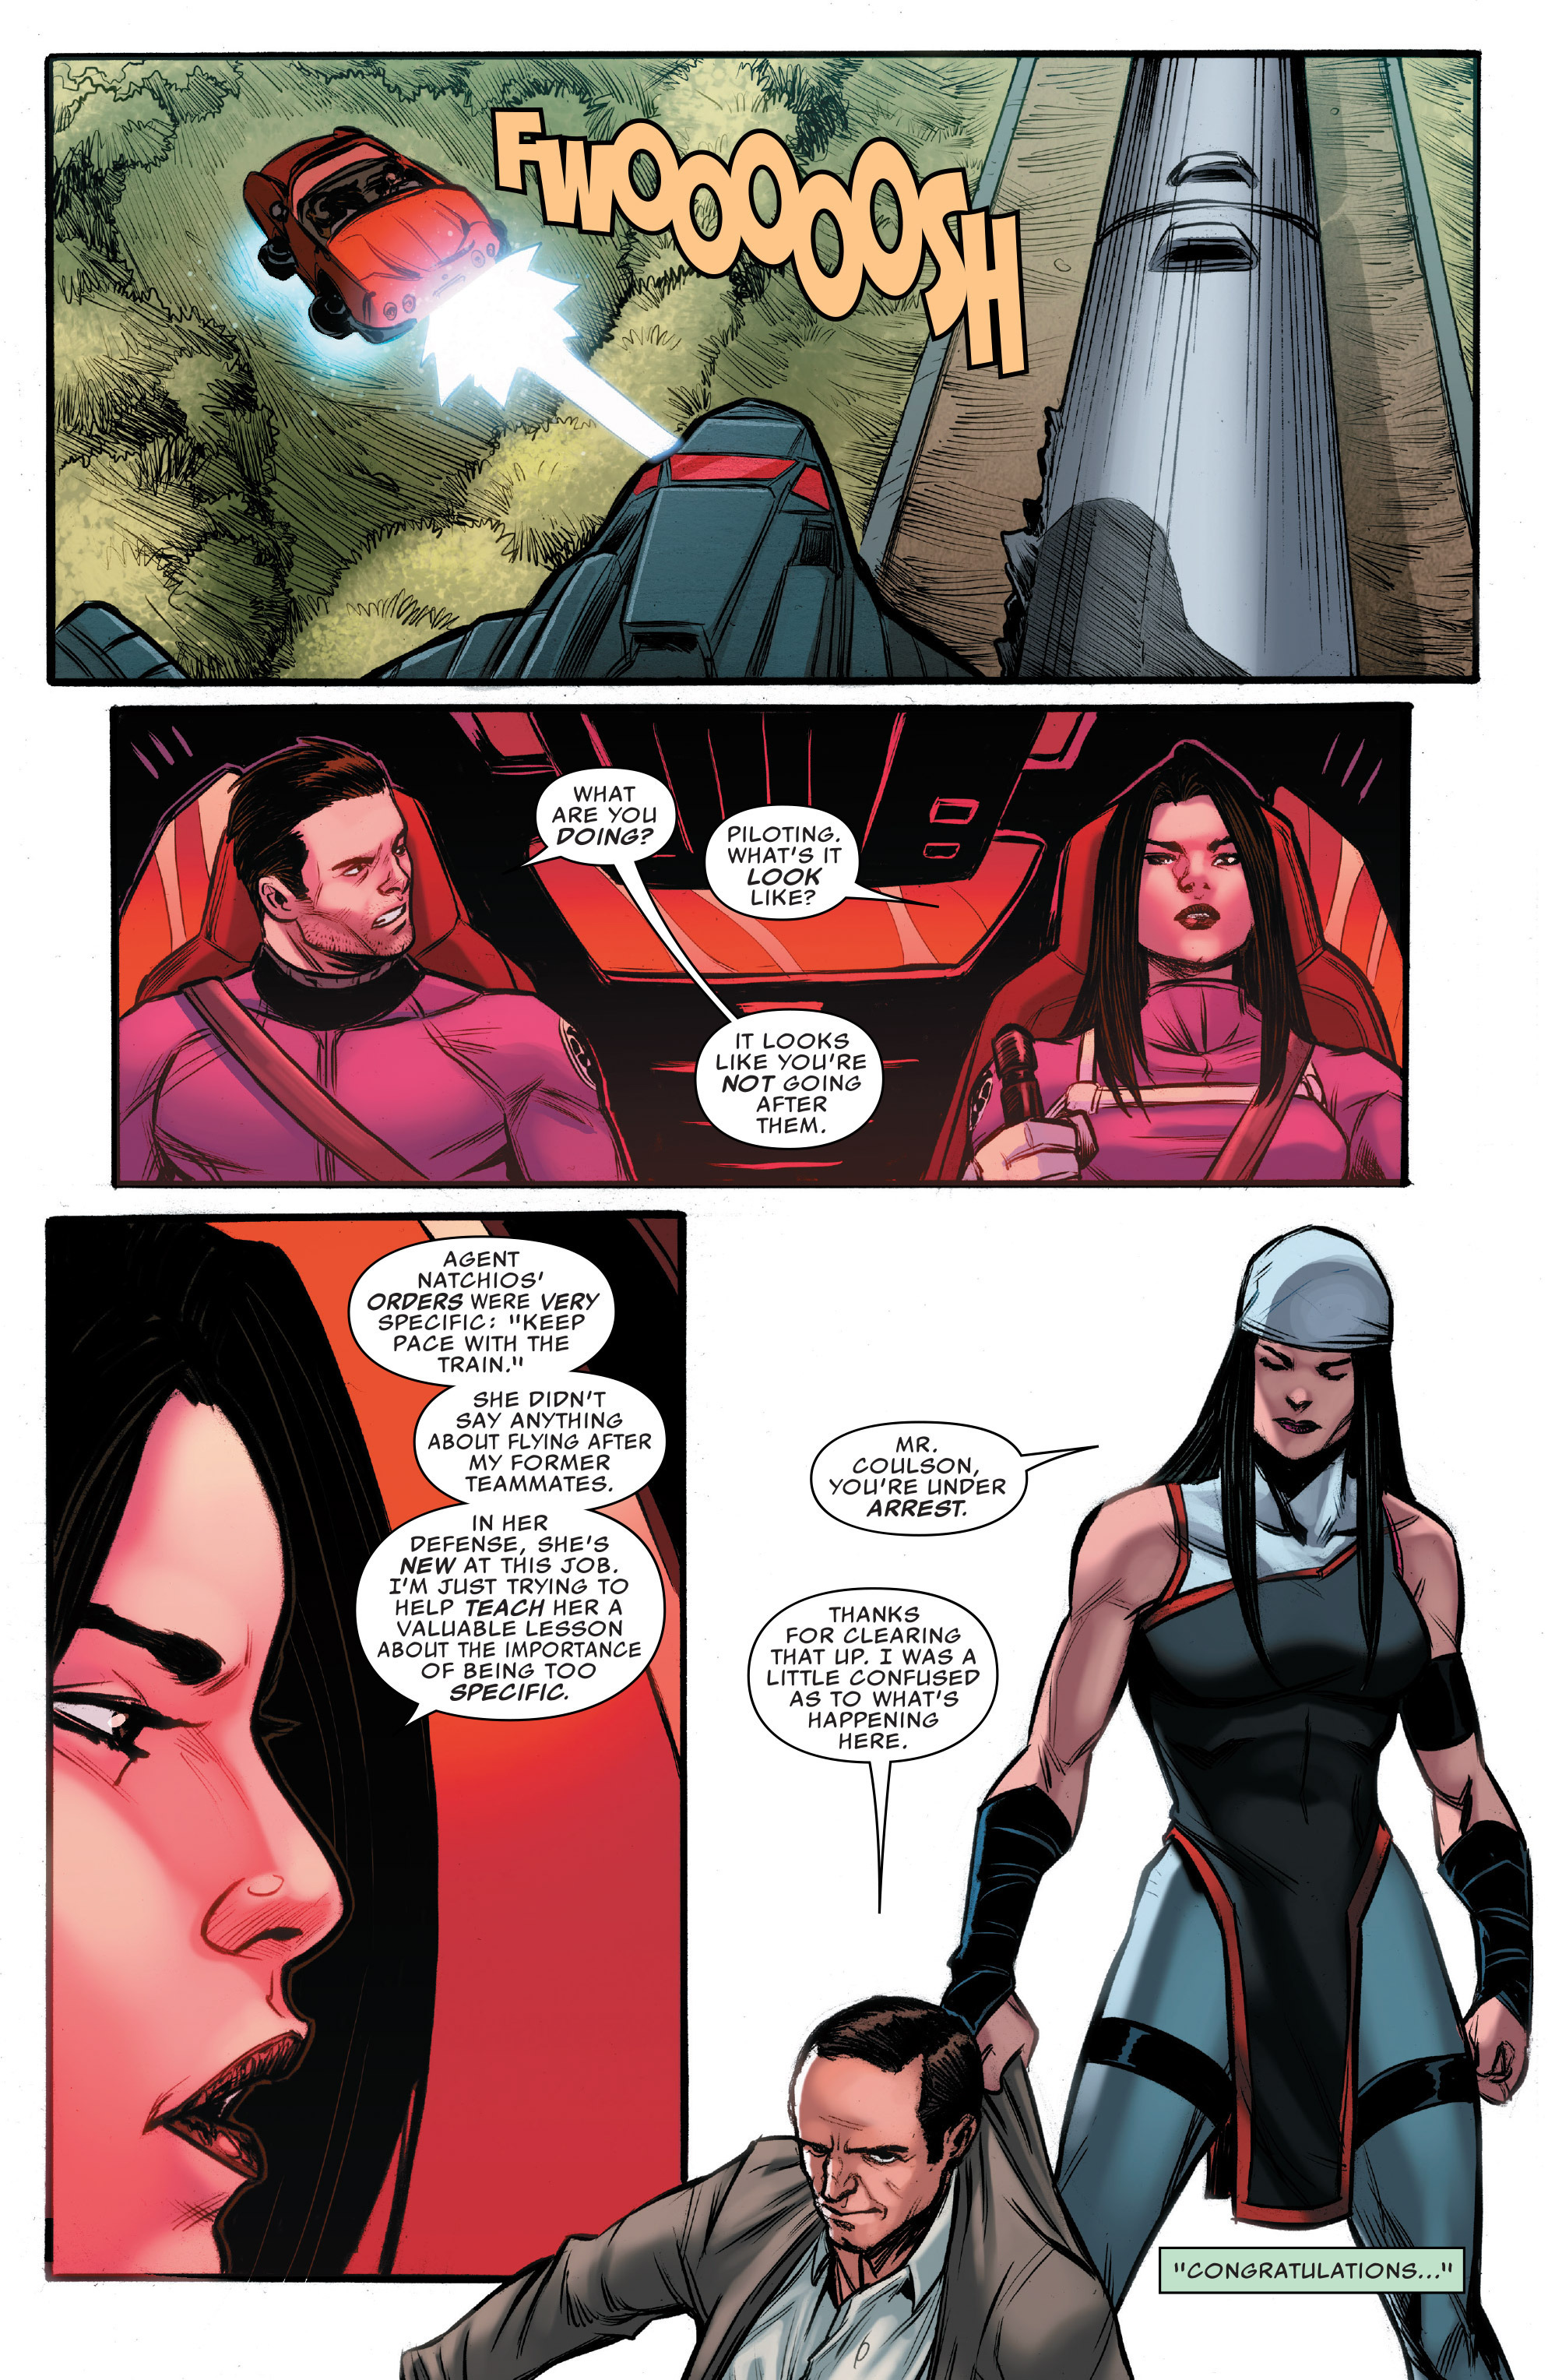 Read online Agents of S.H.I.E.L.D. comic -  Issue #9 - 20